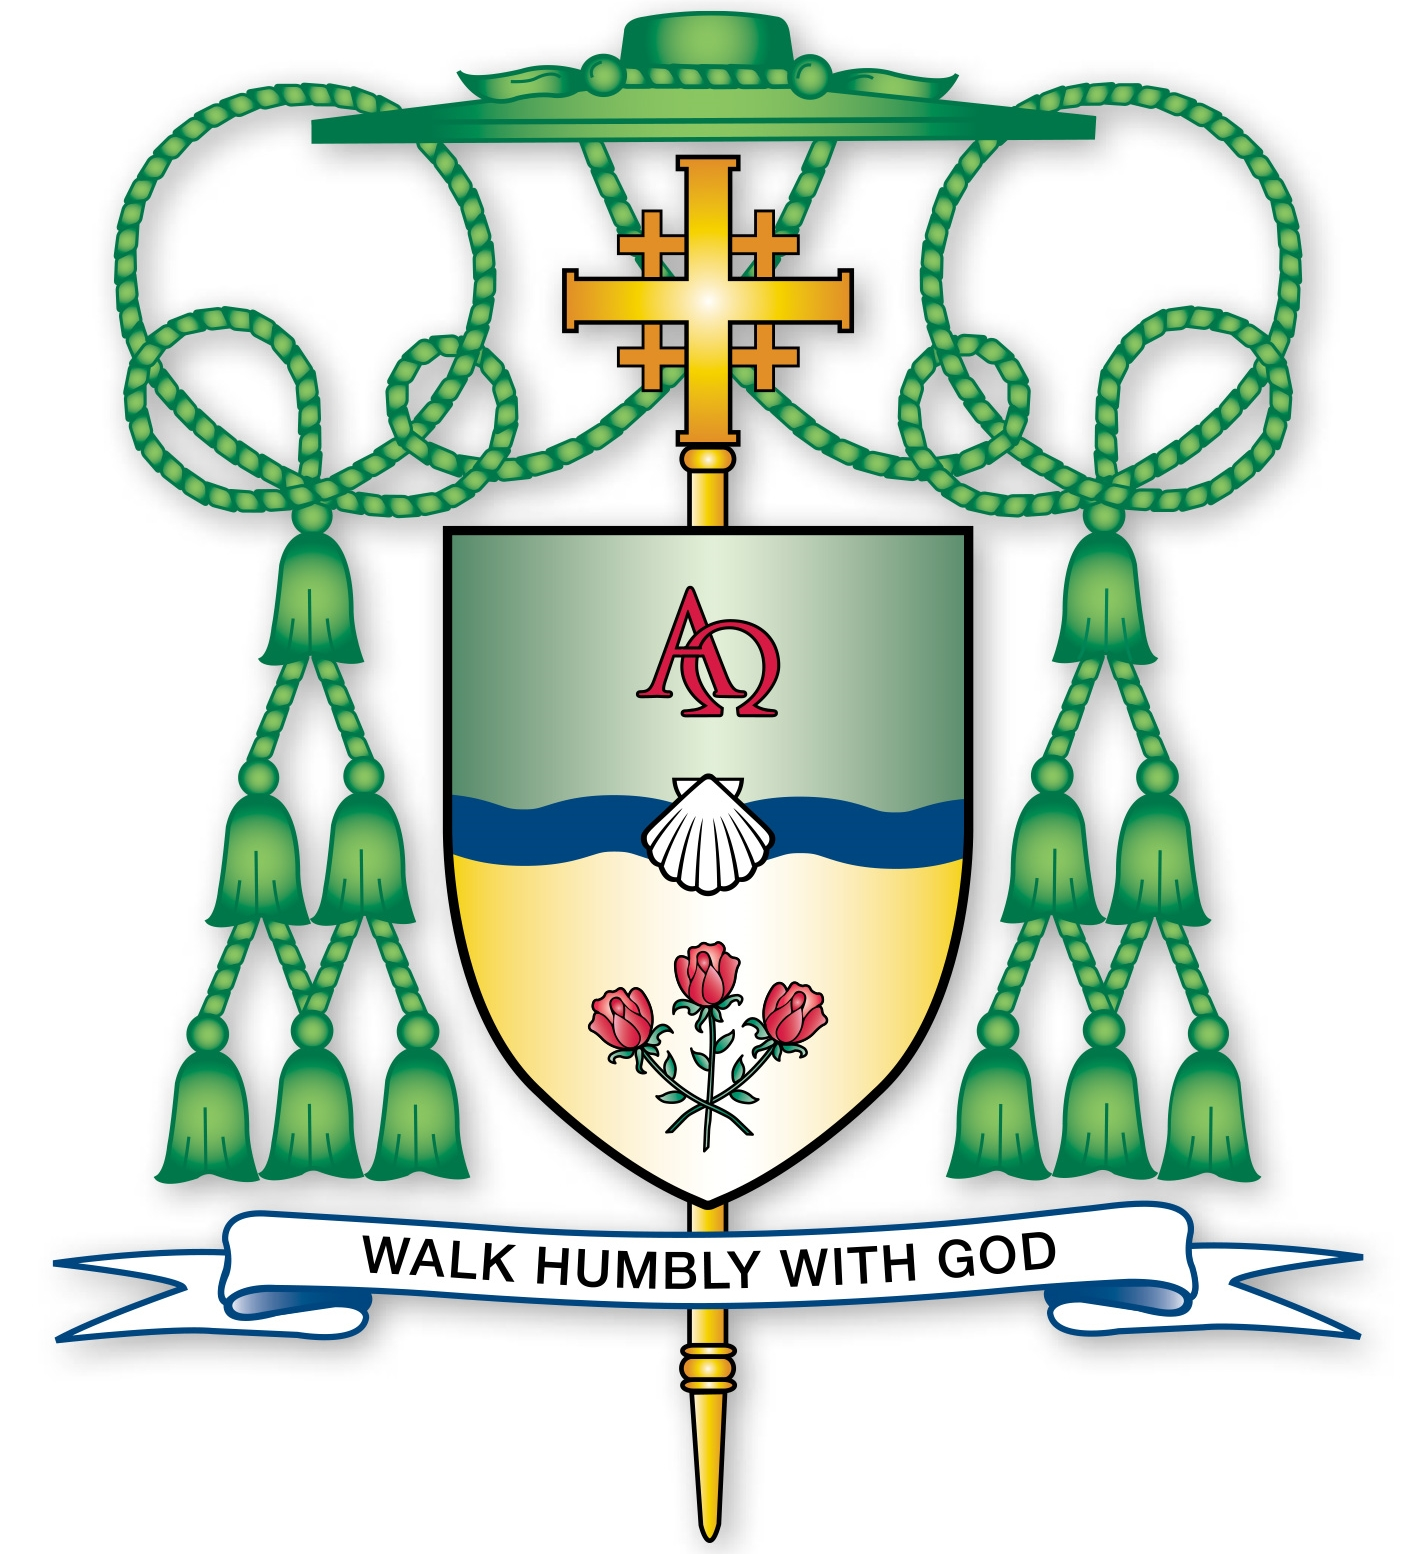 The newly ordained bishop's blazon and coat of arms.